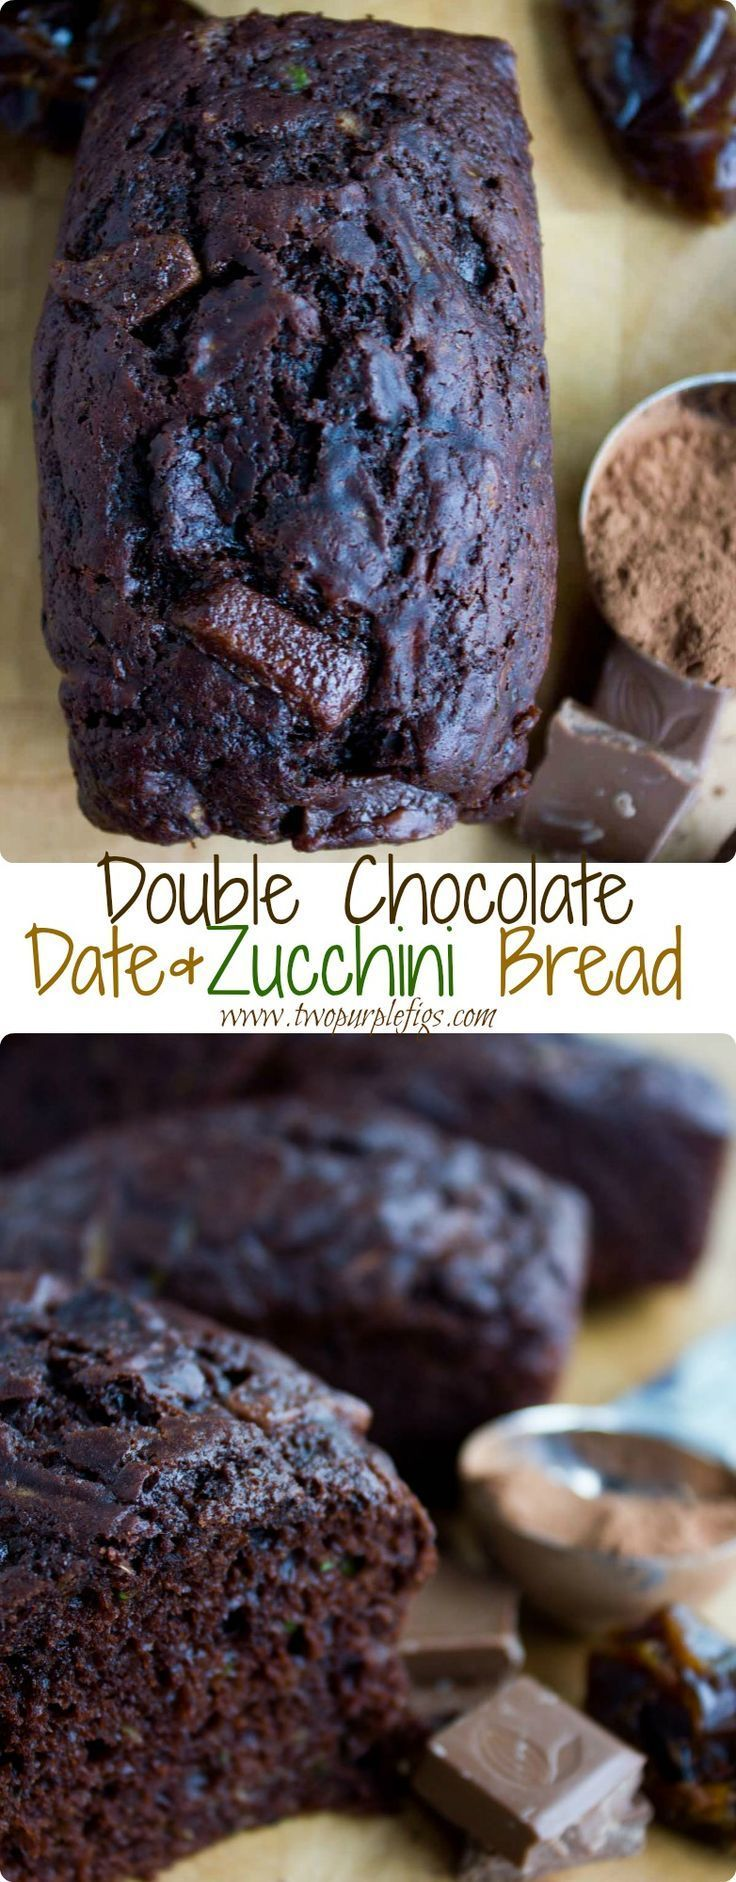 Double Chocolate Date Zucchini Bread. HEALTHY divine and intense chocolate flavor in a tender melt in your mouth, smooth date and zucchini bread studded with chocolate chips. Chocolate lovers--Get the recipe for this ultimate chocolate bread! www.twopurpl